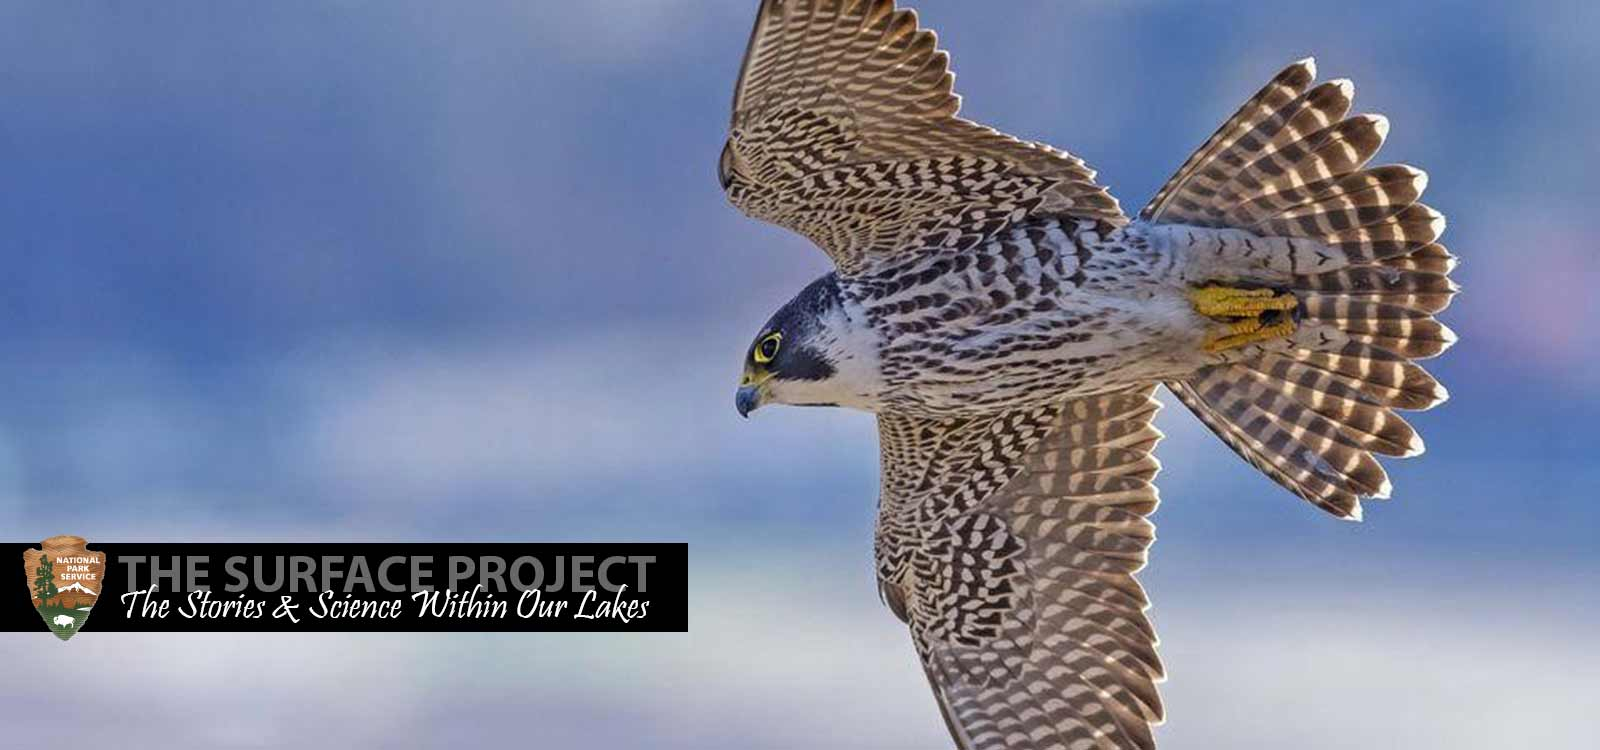 A peregrine falcon flying in the sky